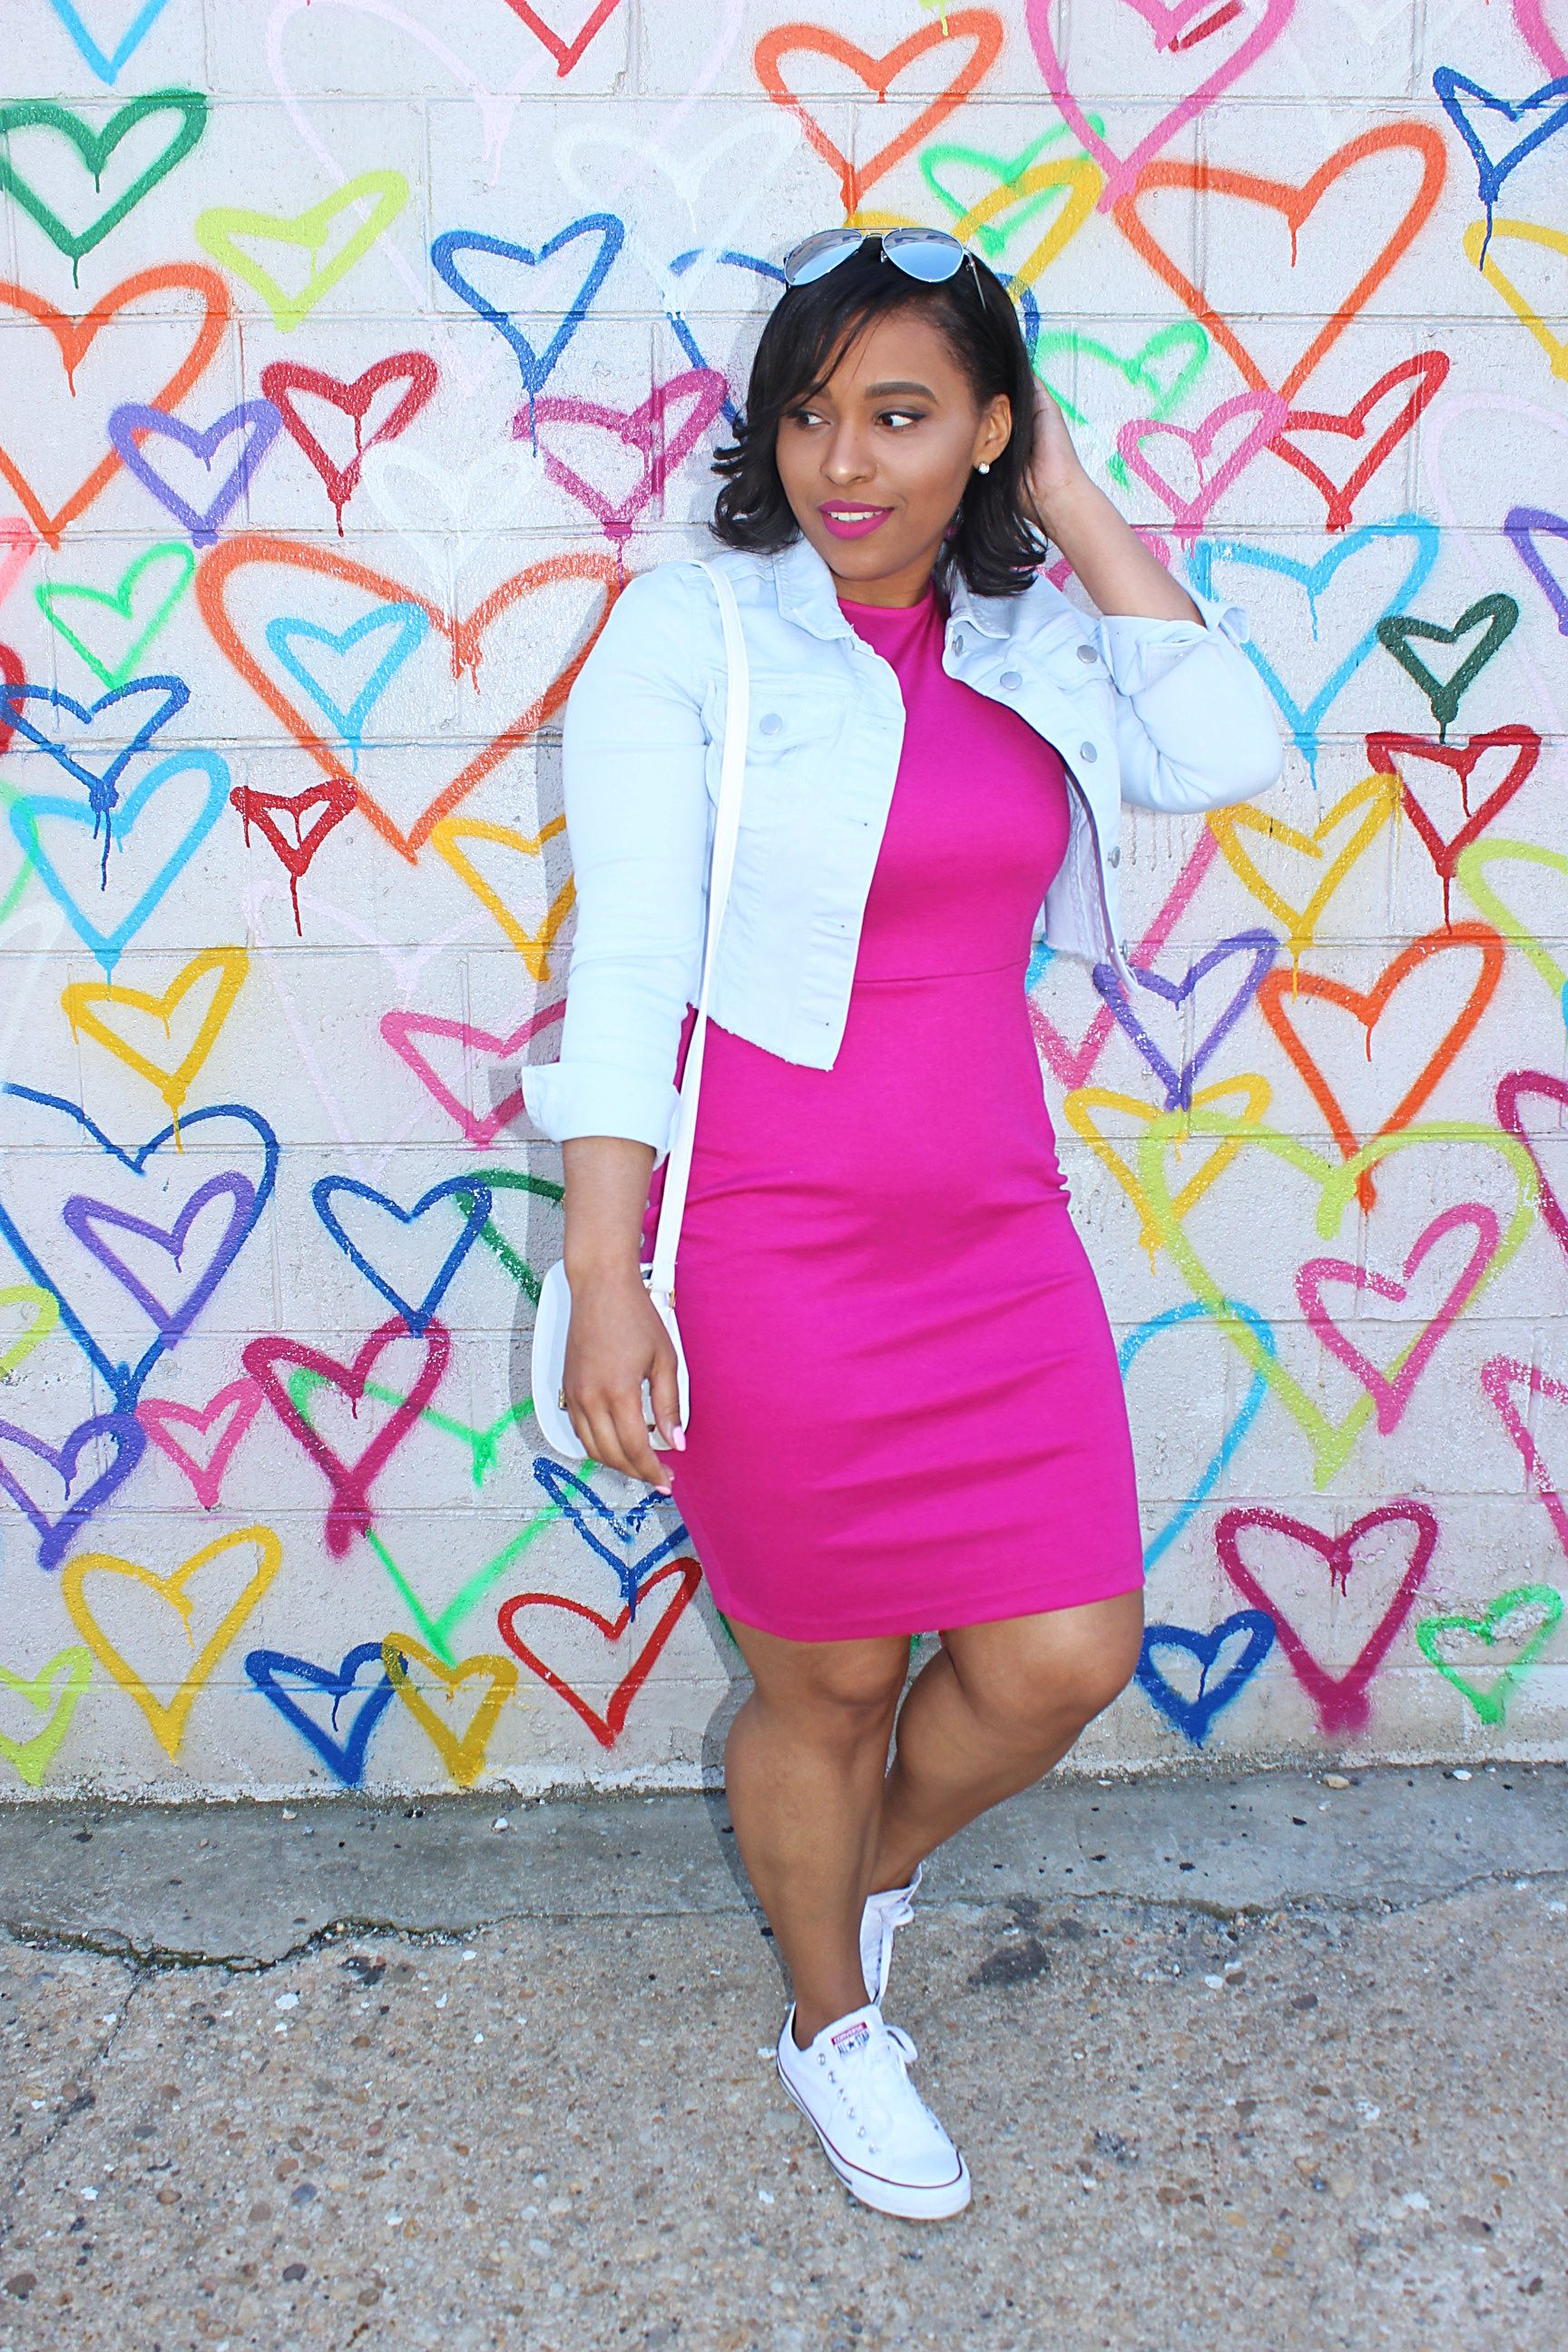 Patty's Kloset - Writings On the Wall #fashion #blogger #ootd #outfit